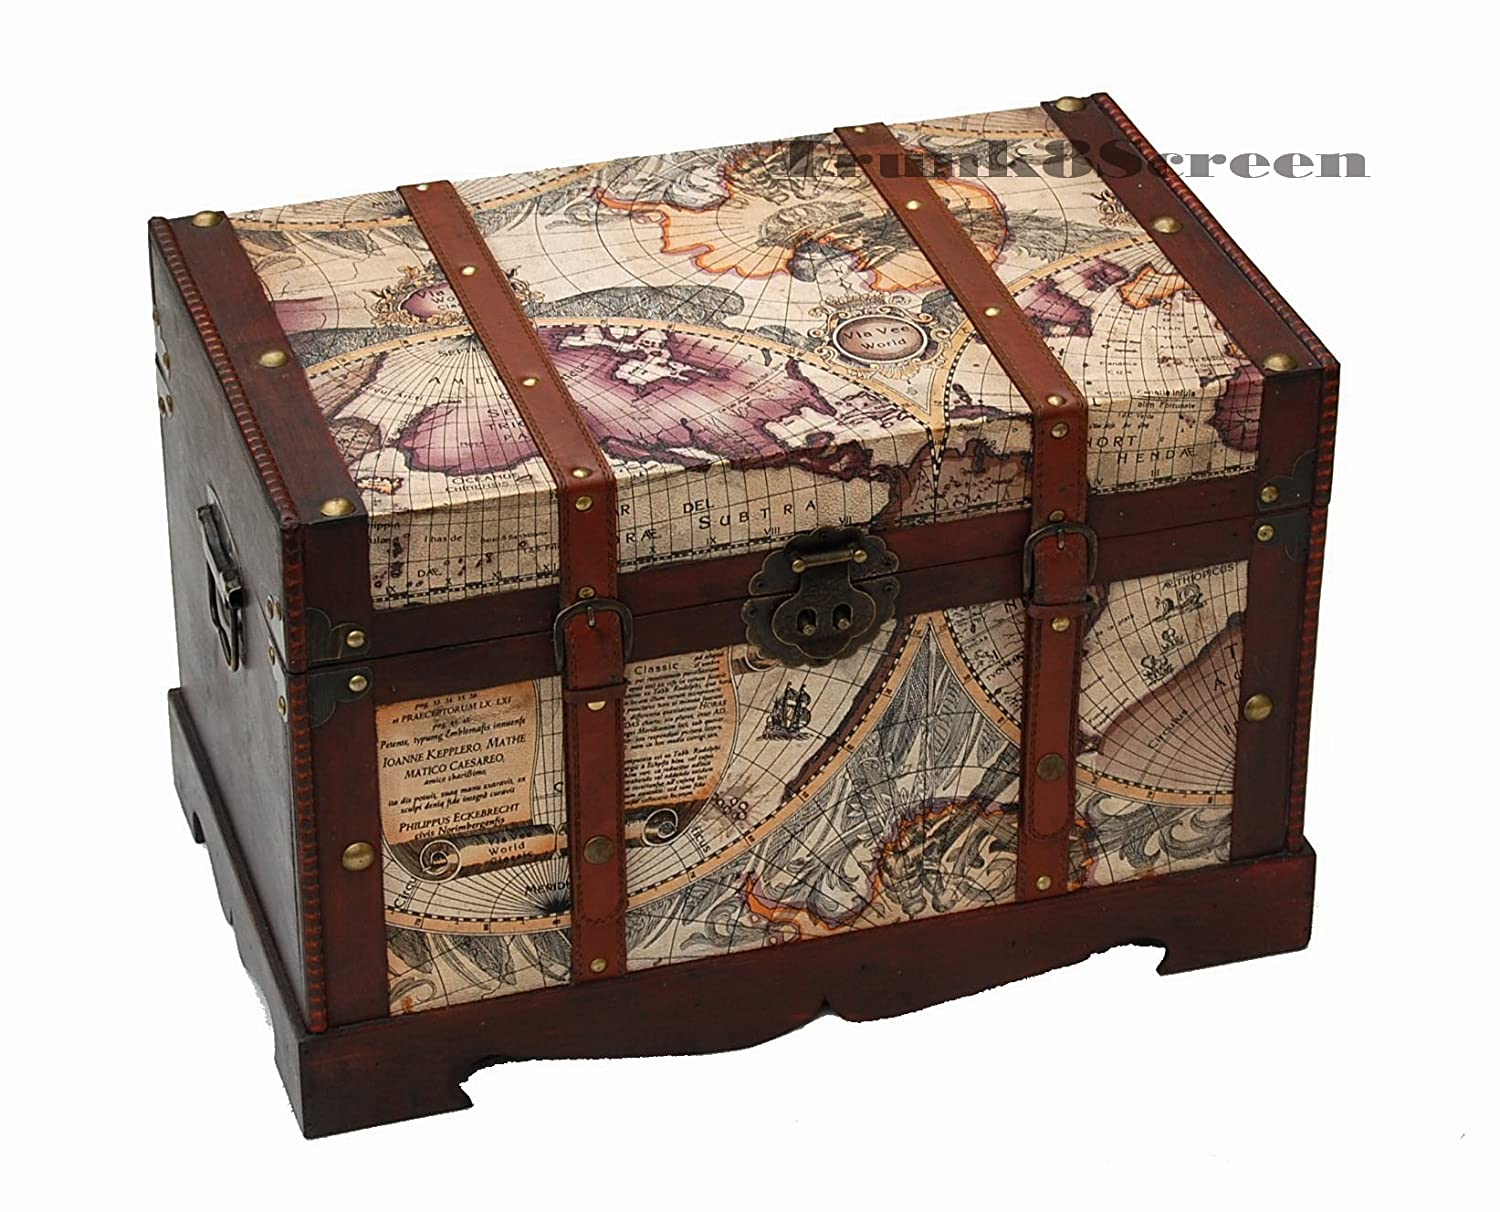 Traditional Wooden Storage Trunk With Antique Sailing Map Pattern:  Amazon.co.uk: Kitchen U0026 Home